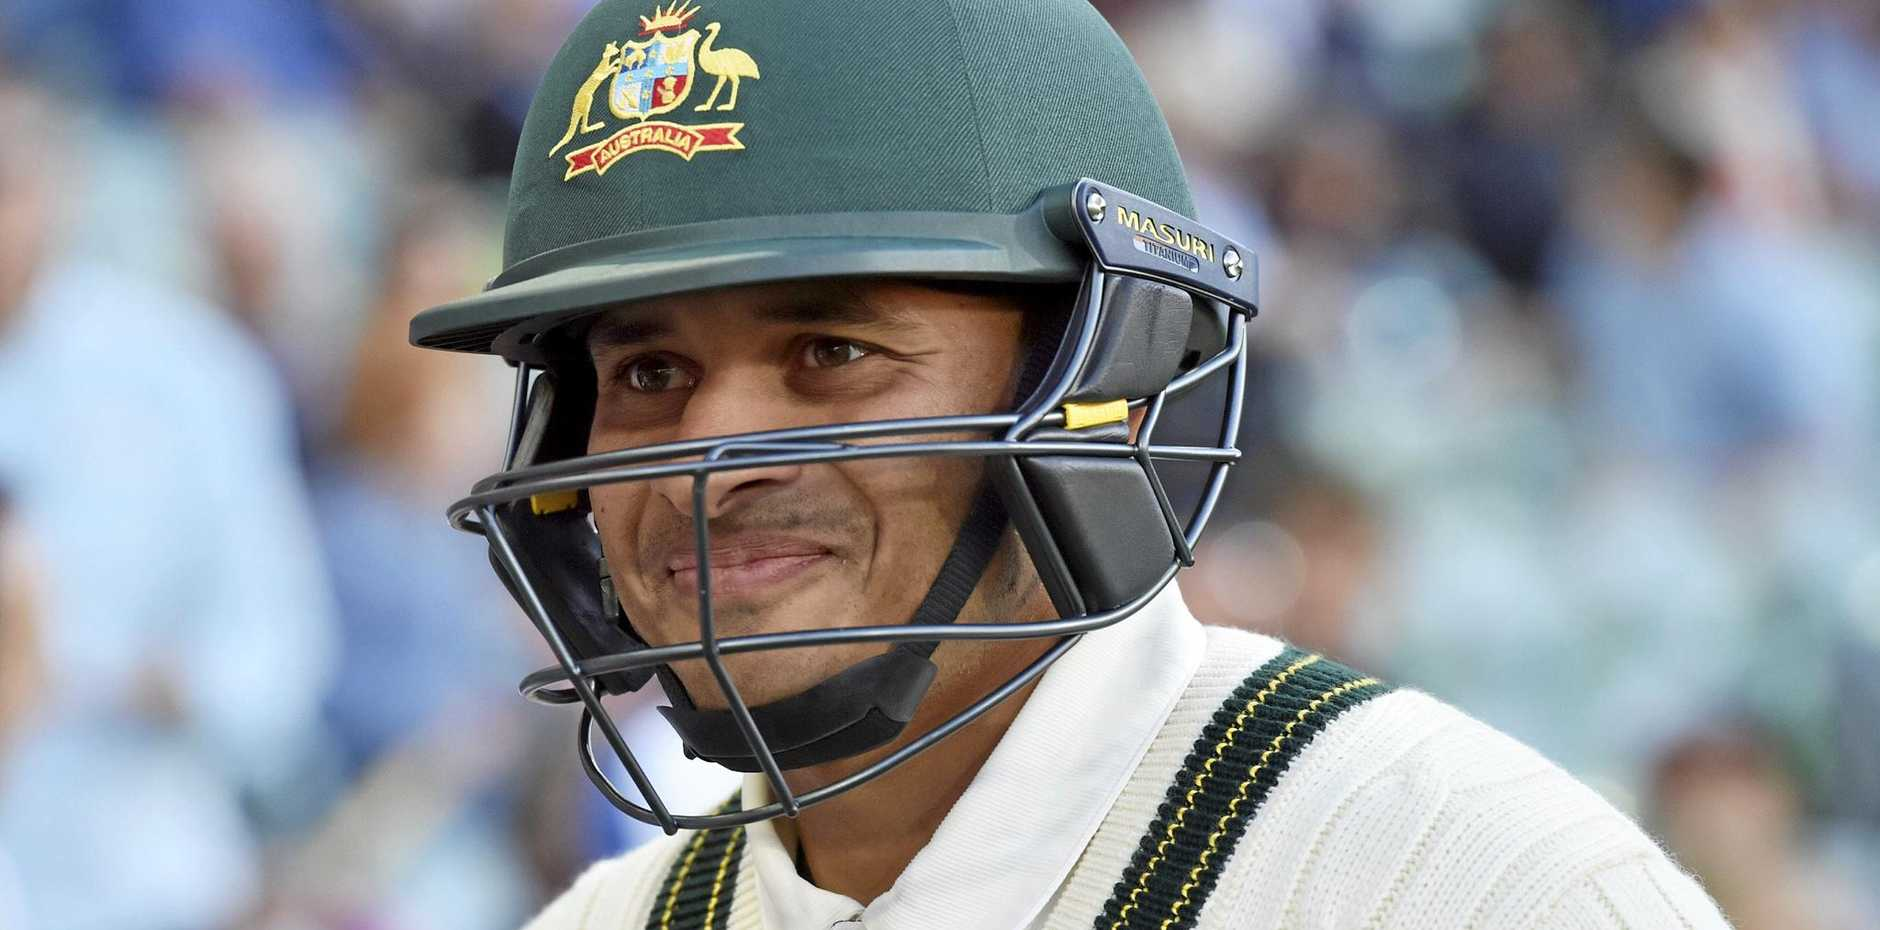 Usman Khawaja is all smiles after scoring a ton at the Adelaide Oval.